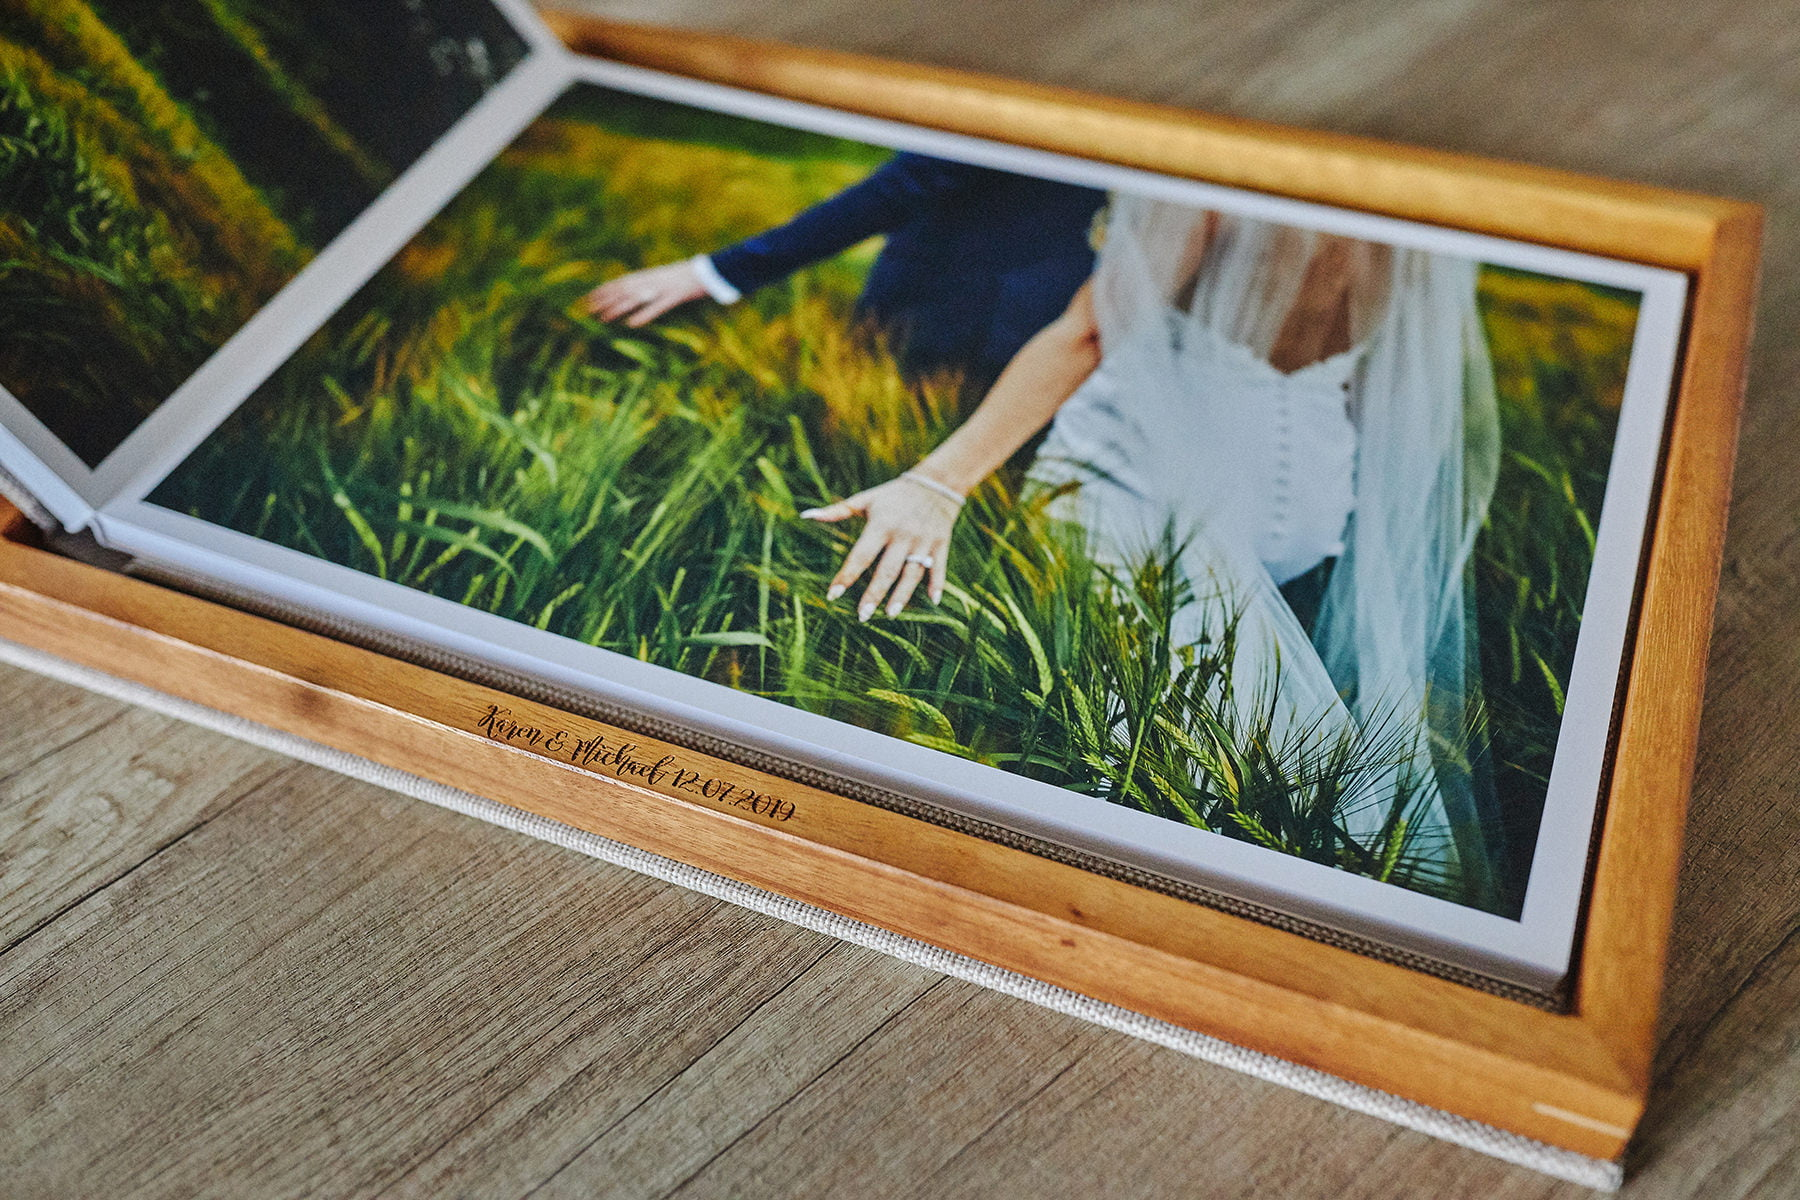 Why you should order a wedding album even if your wedding was 5, 10 or even 20 years ago! 2